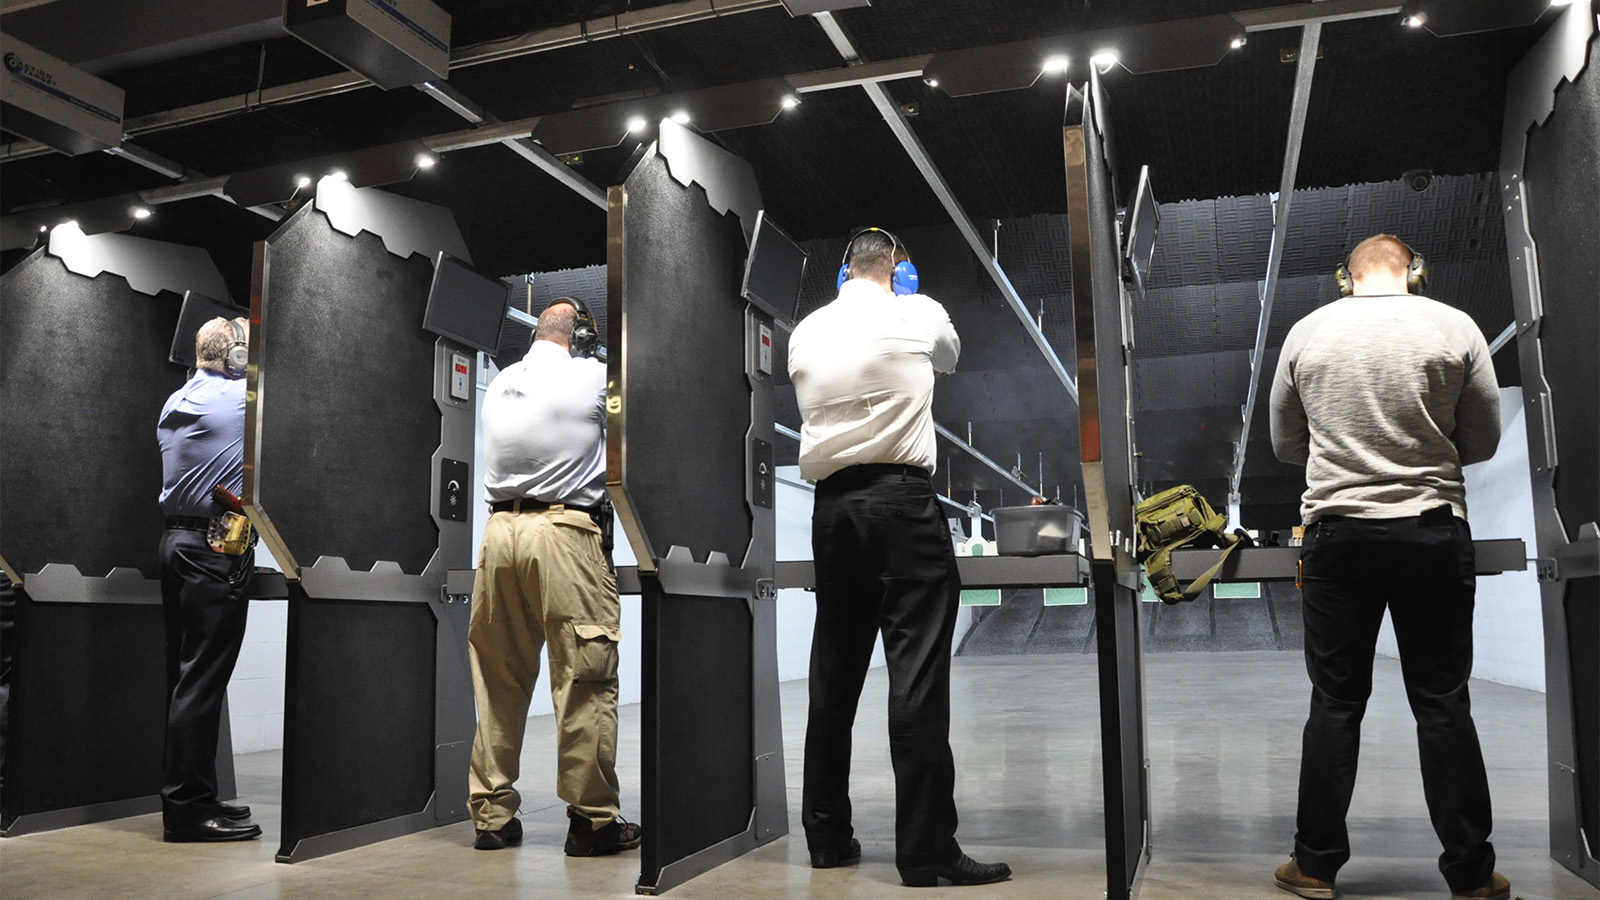 4 Saddle River Range Members shooting at Indoor Range in Conroe